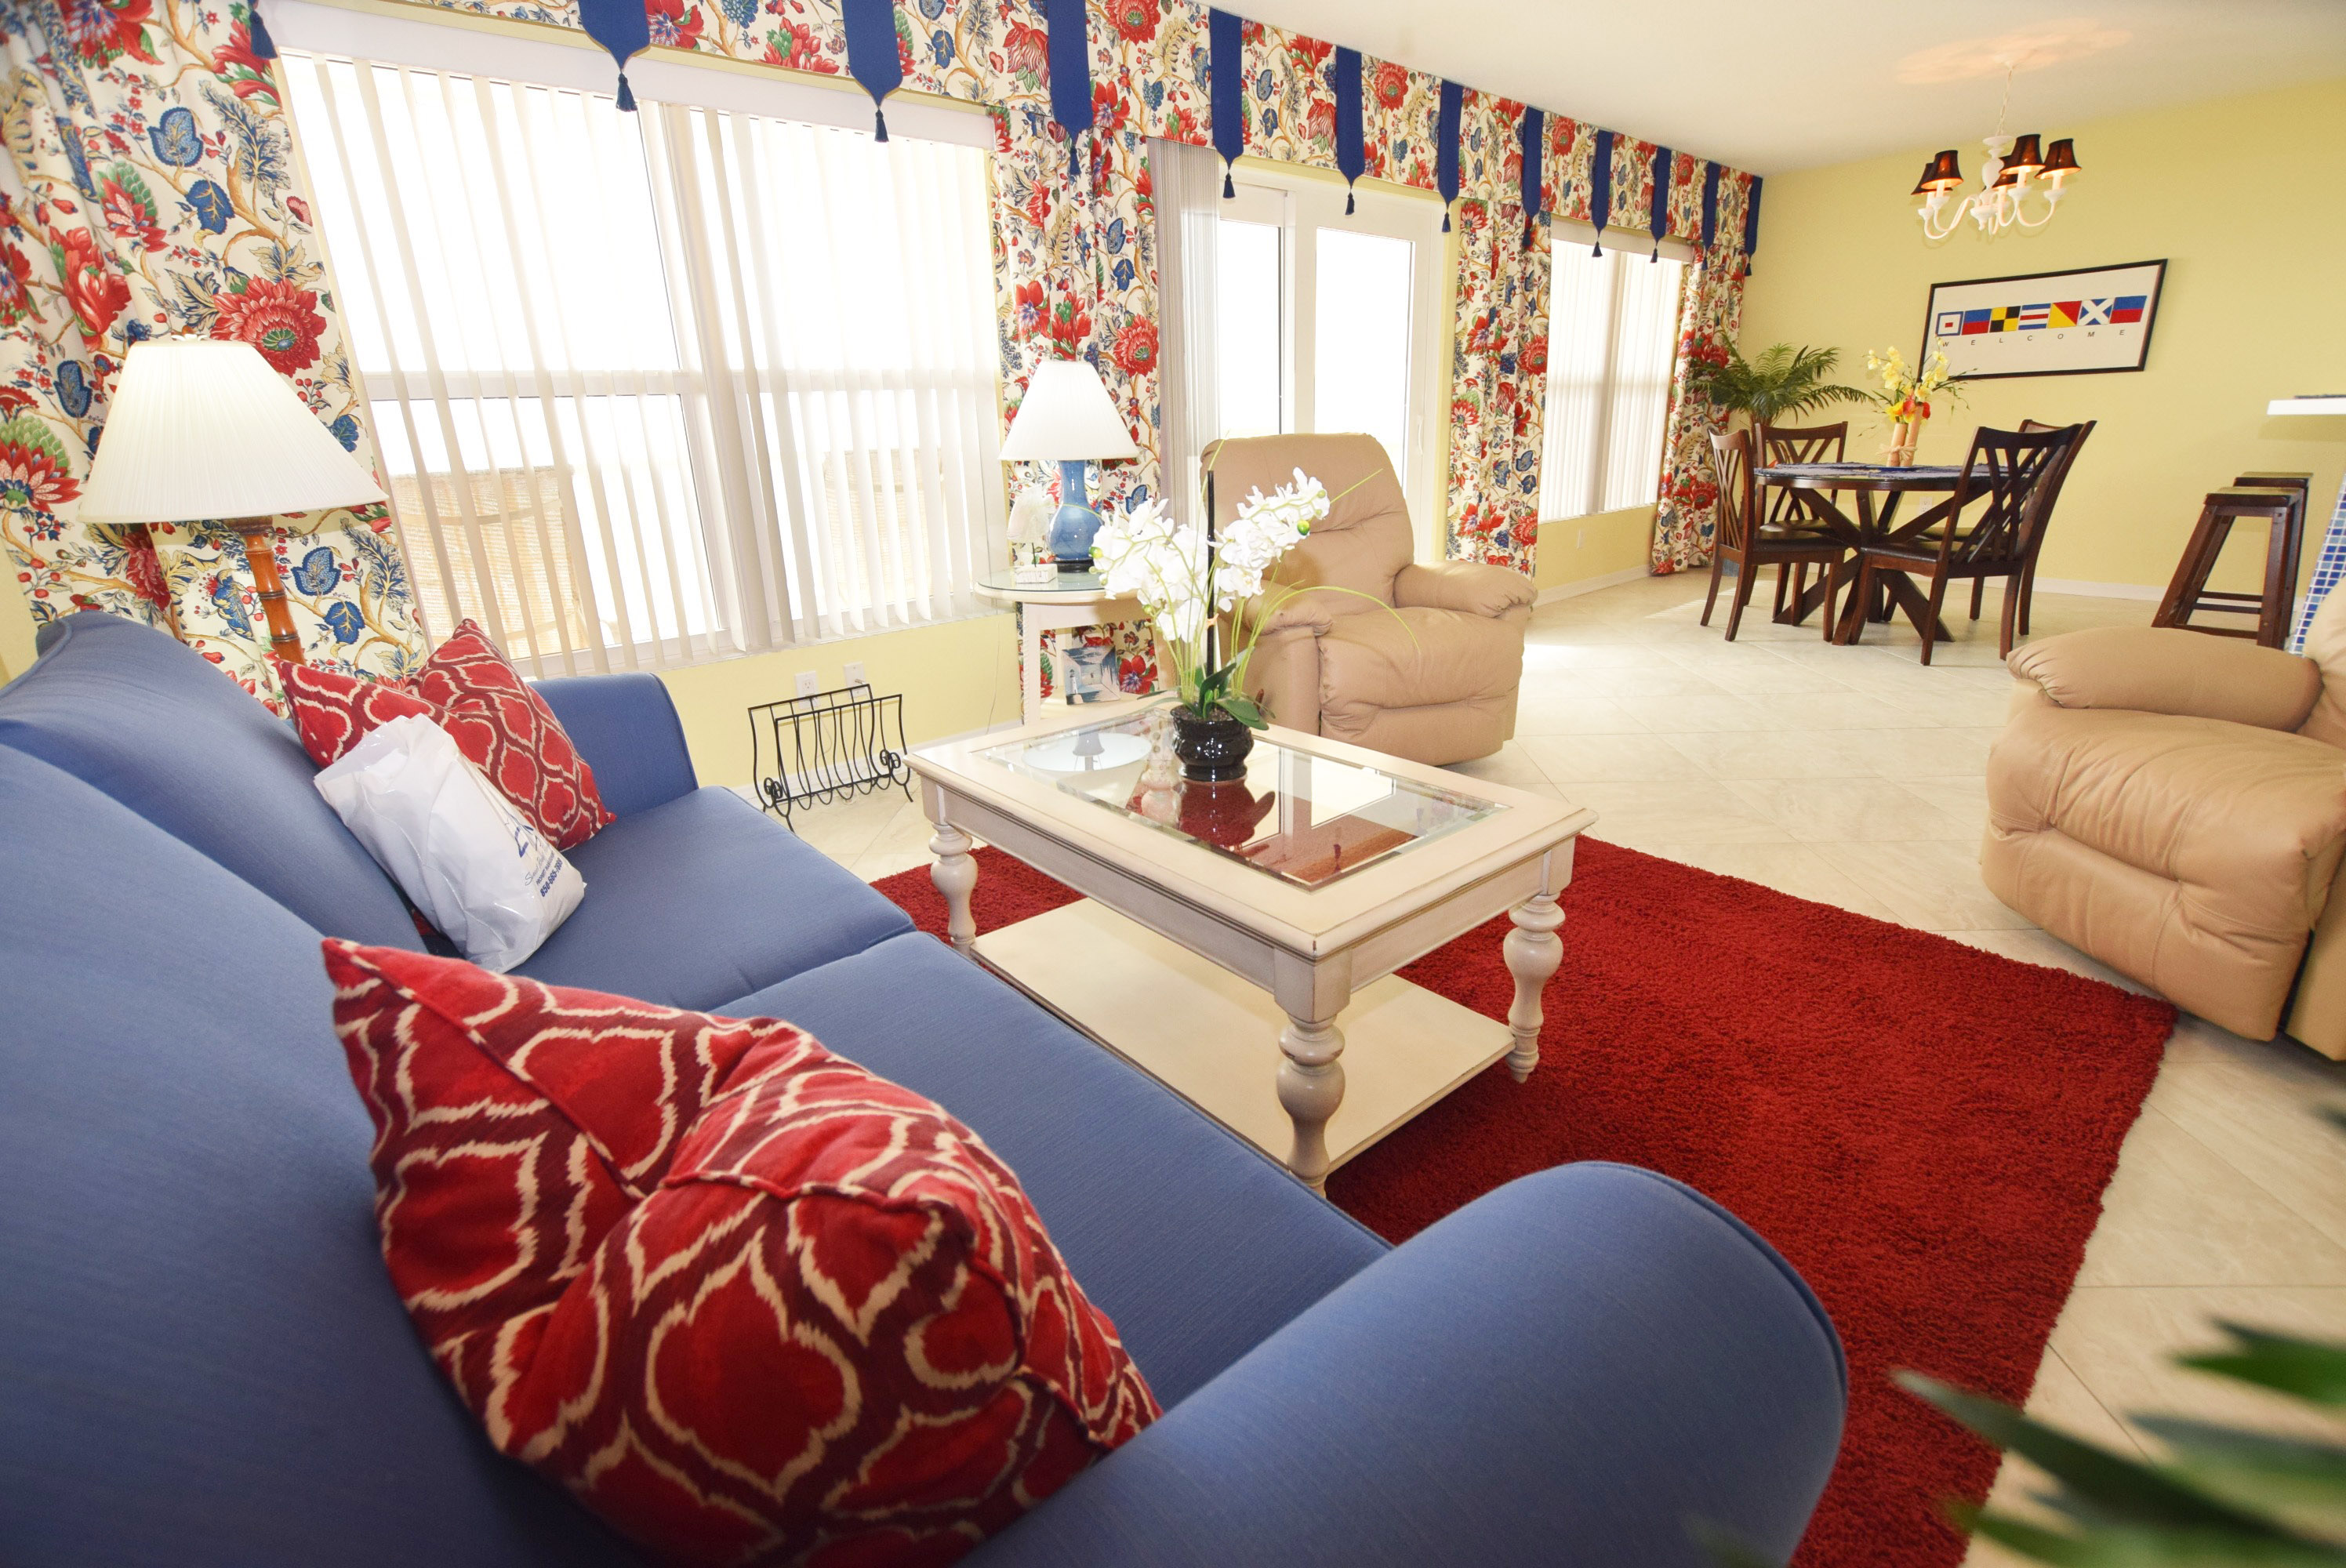 Living Room - Islander Beach 4009 Fort Walton Beach Okaloosa Island Vacation Rentals